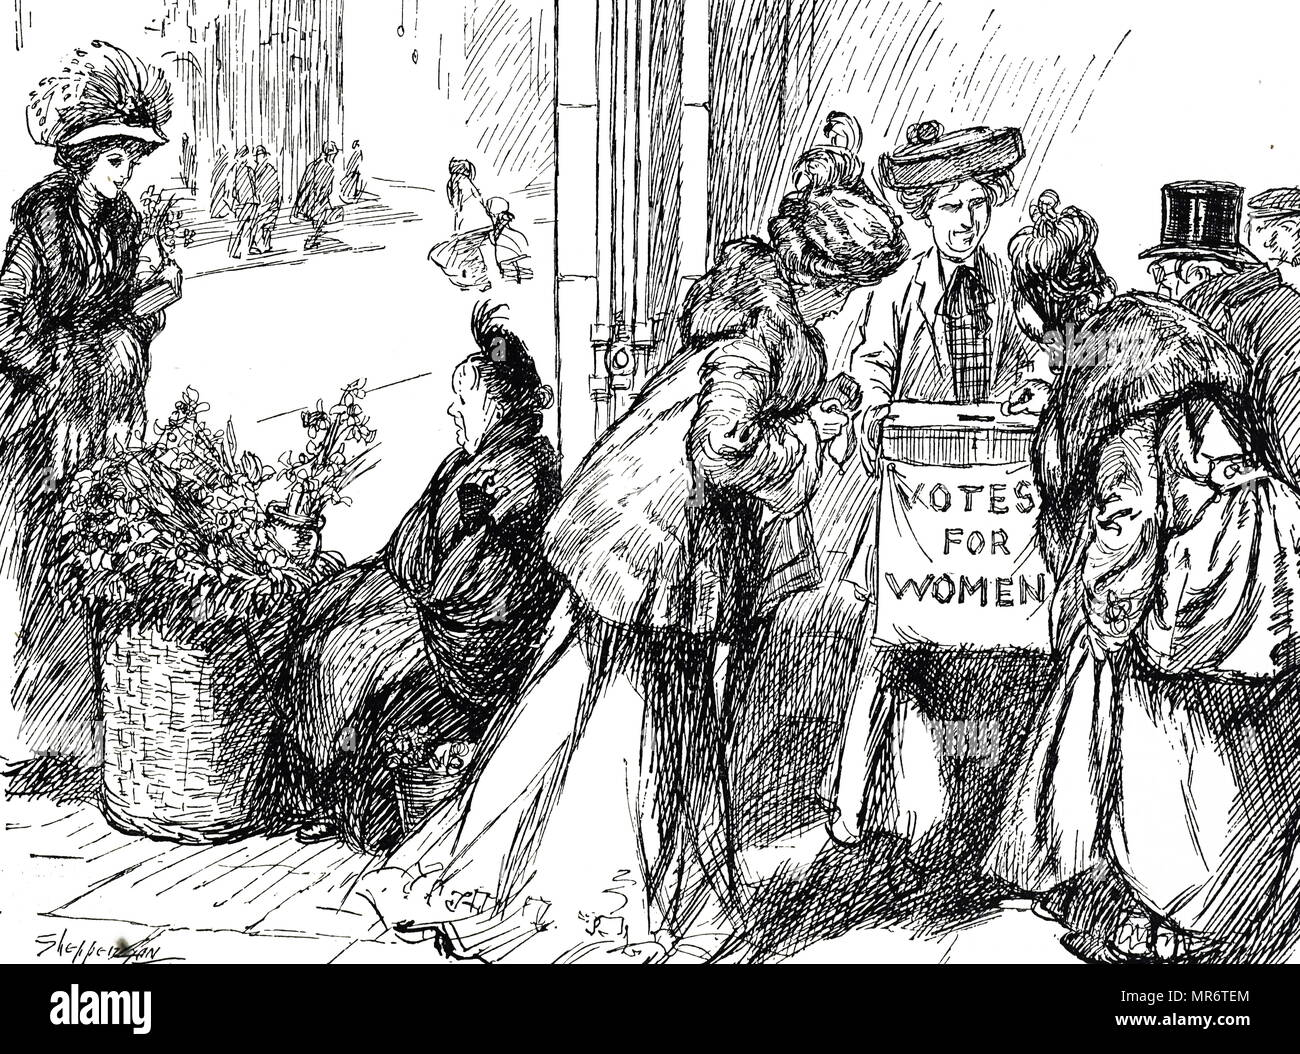 Cartoon commenting on the women's suffrage movement - women are collecting funds for Votes for Women at the expense of working women. Dated 20th century Stock Photo